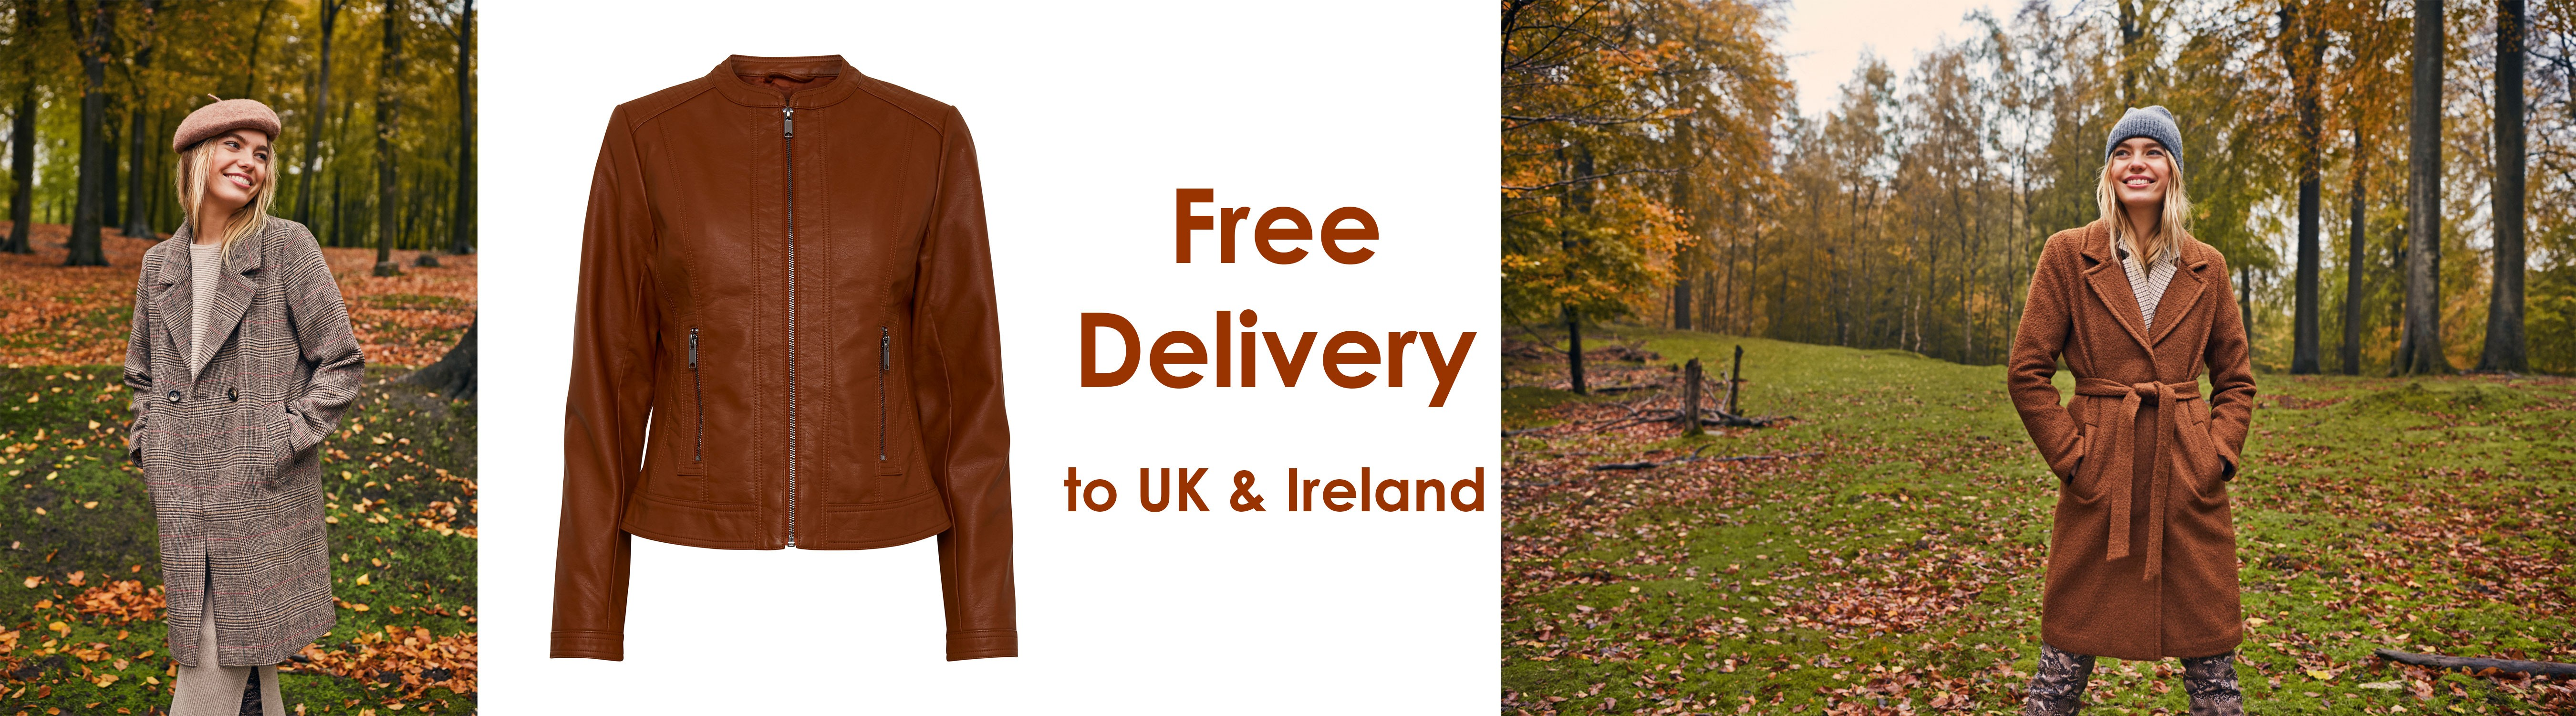 Belle De Paris Boutique - Shop Coats and Jackets - Worldwide Delivery available - Free Delivery to UK and Ireland